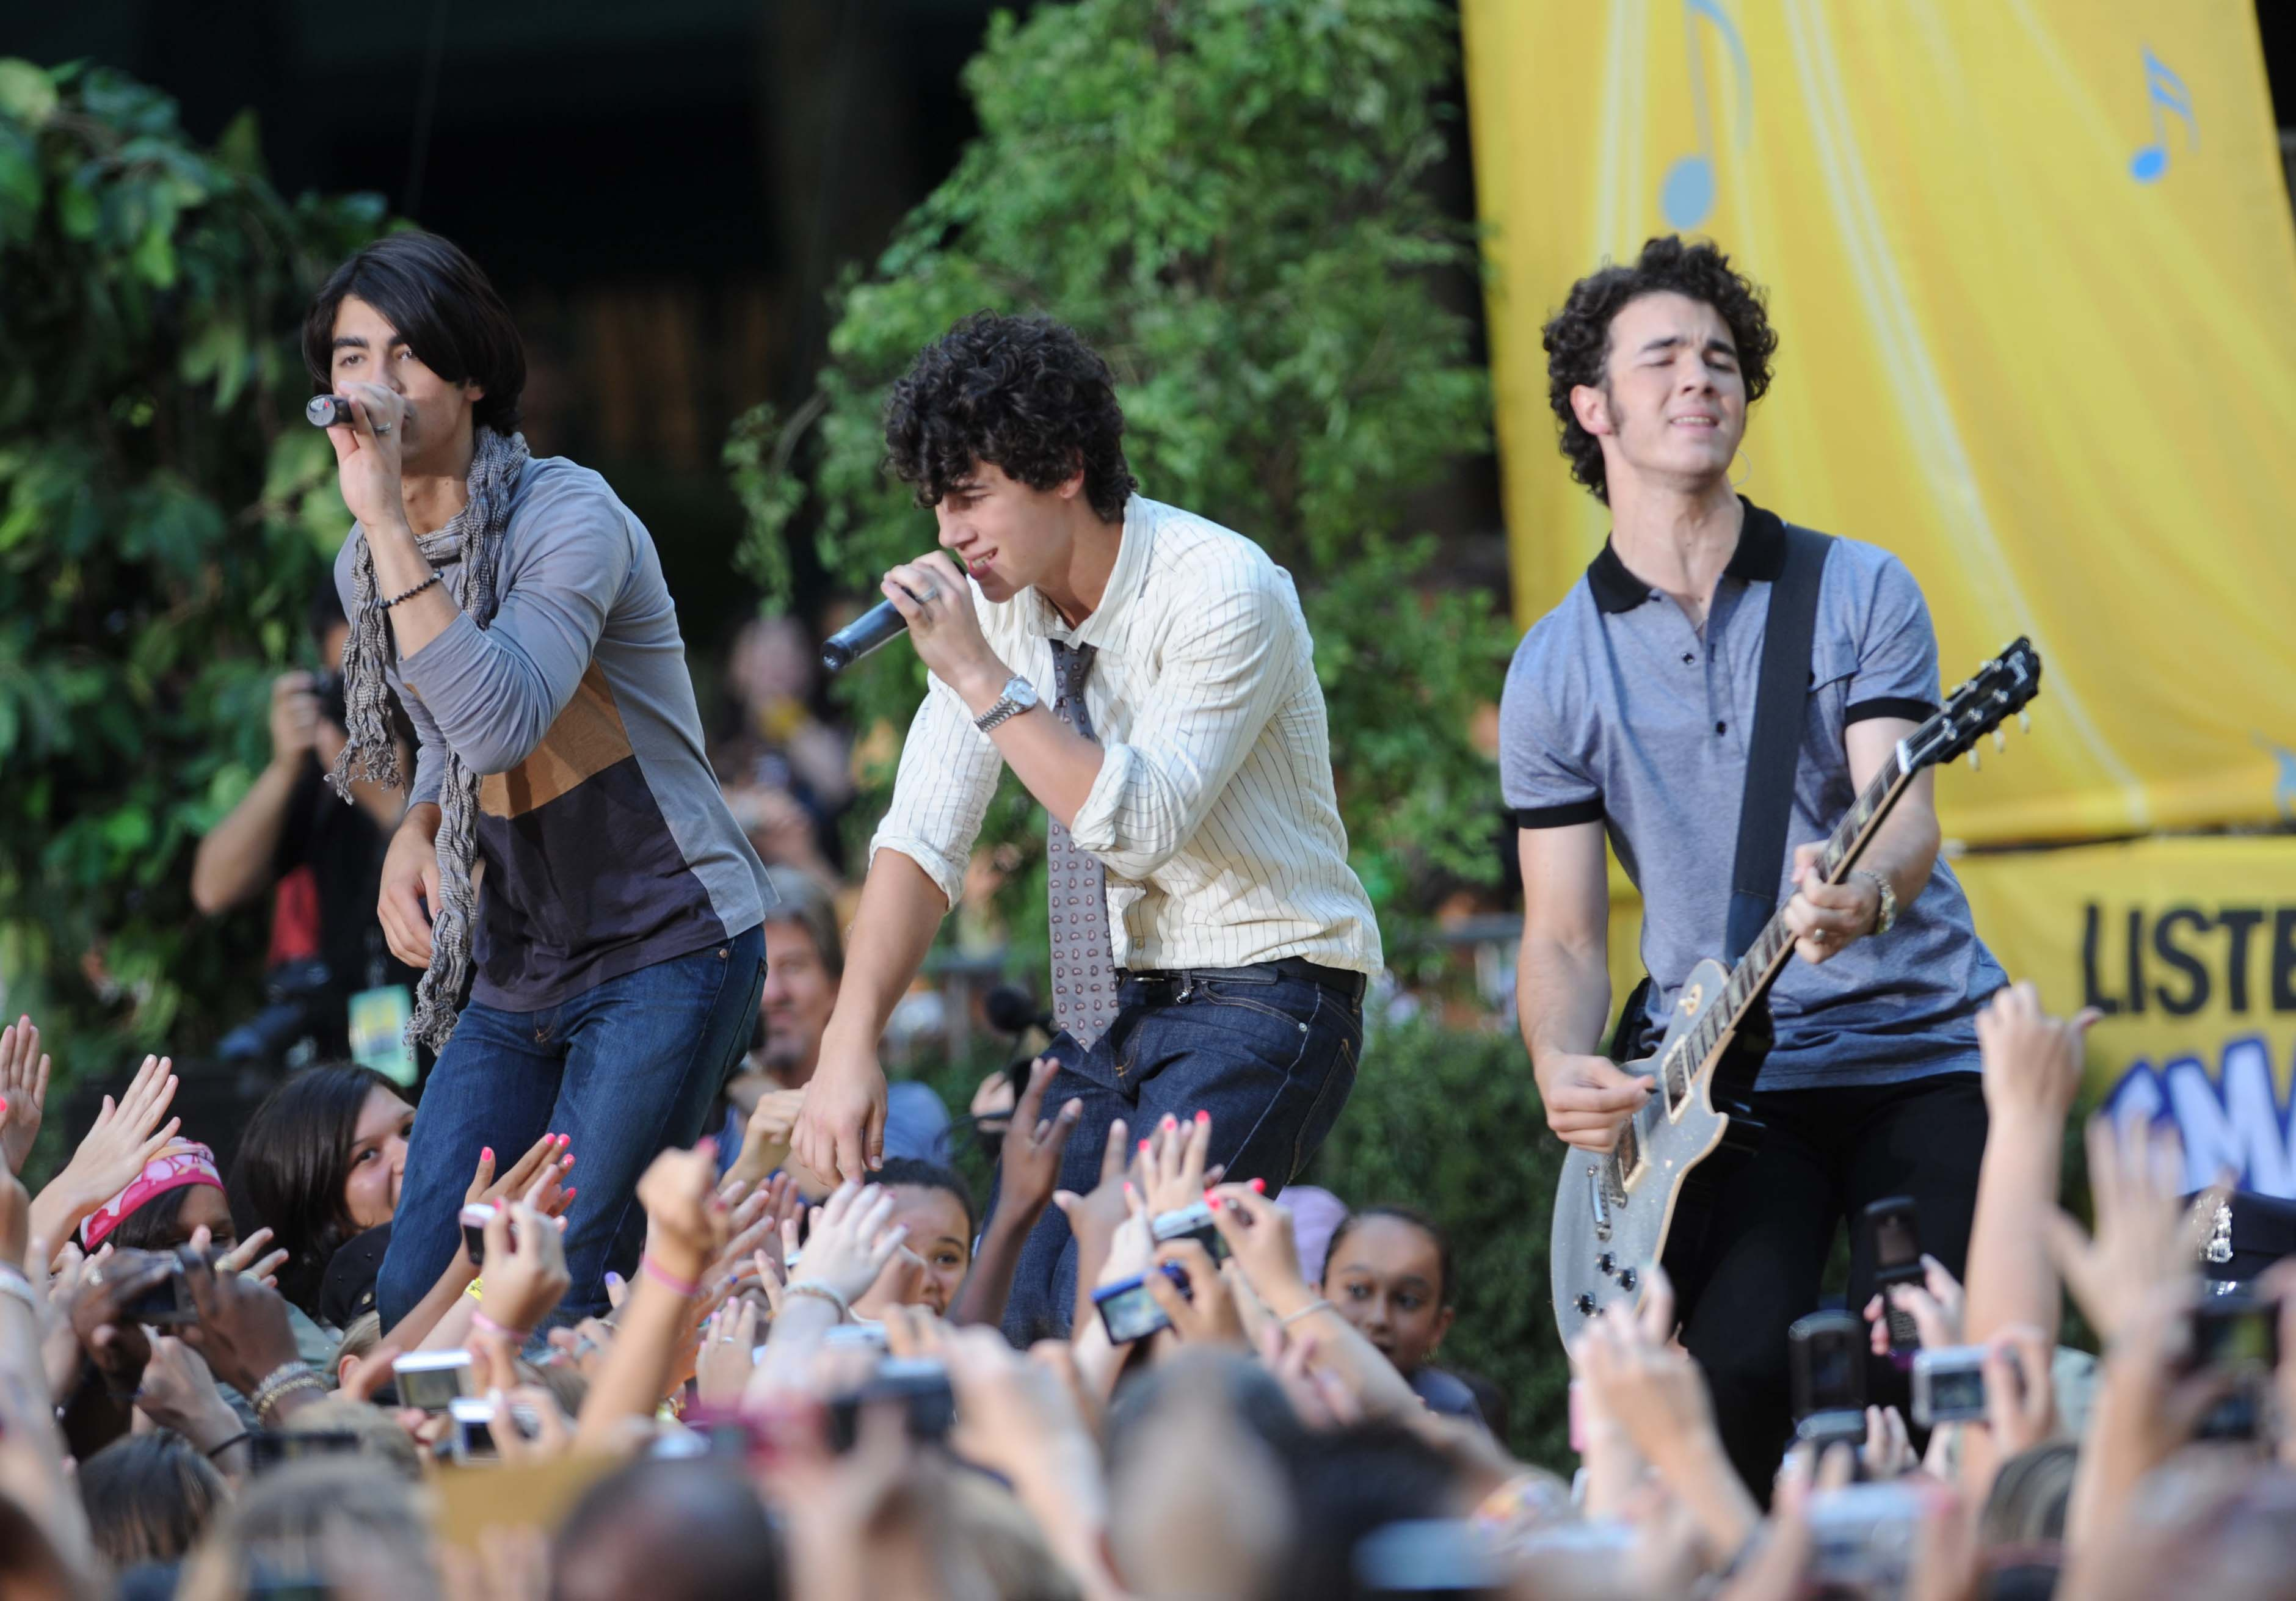 Jonas Brothers Photos, News, and Videos | Just Jared Jr.